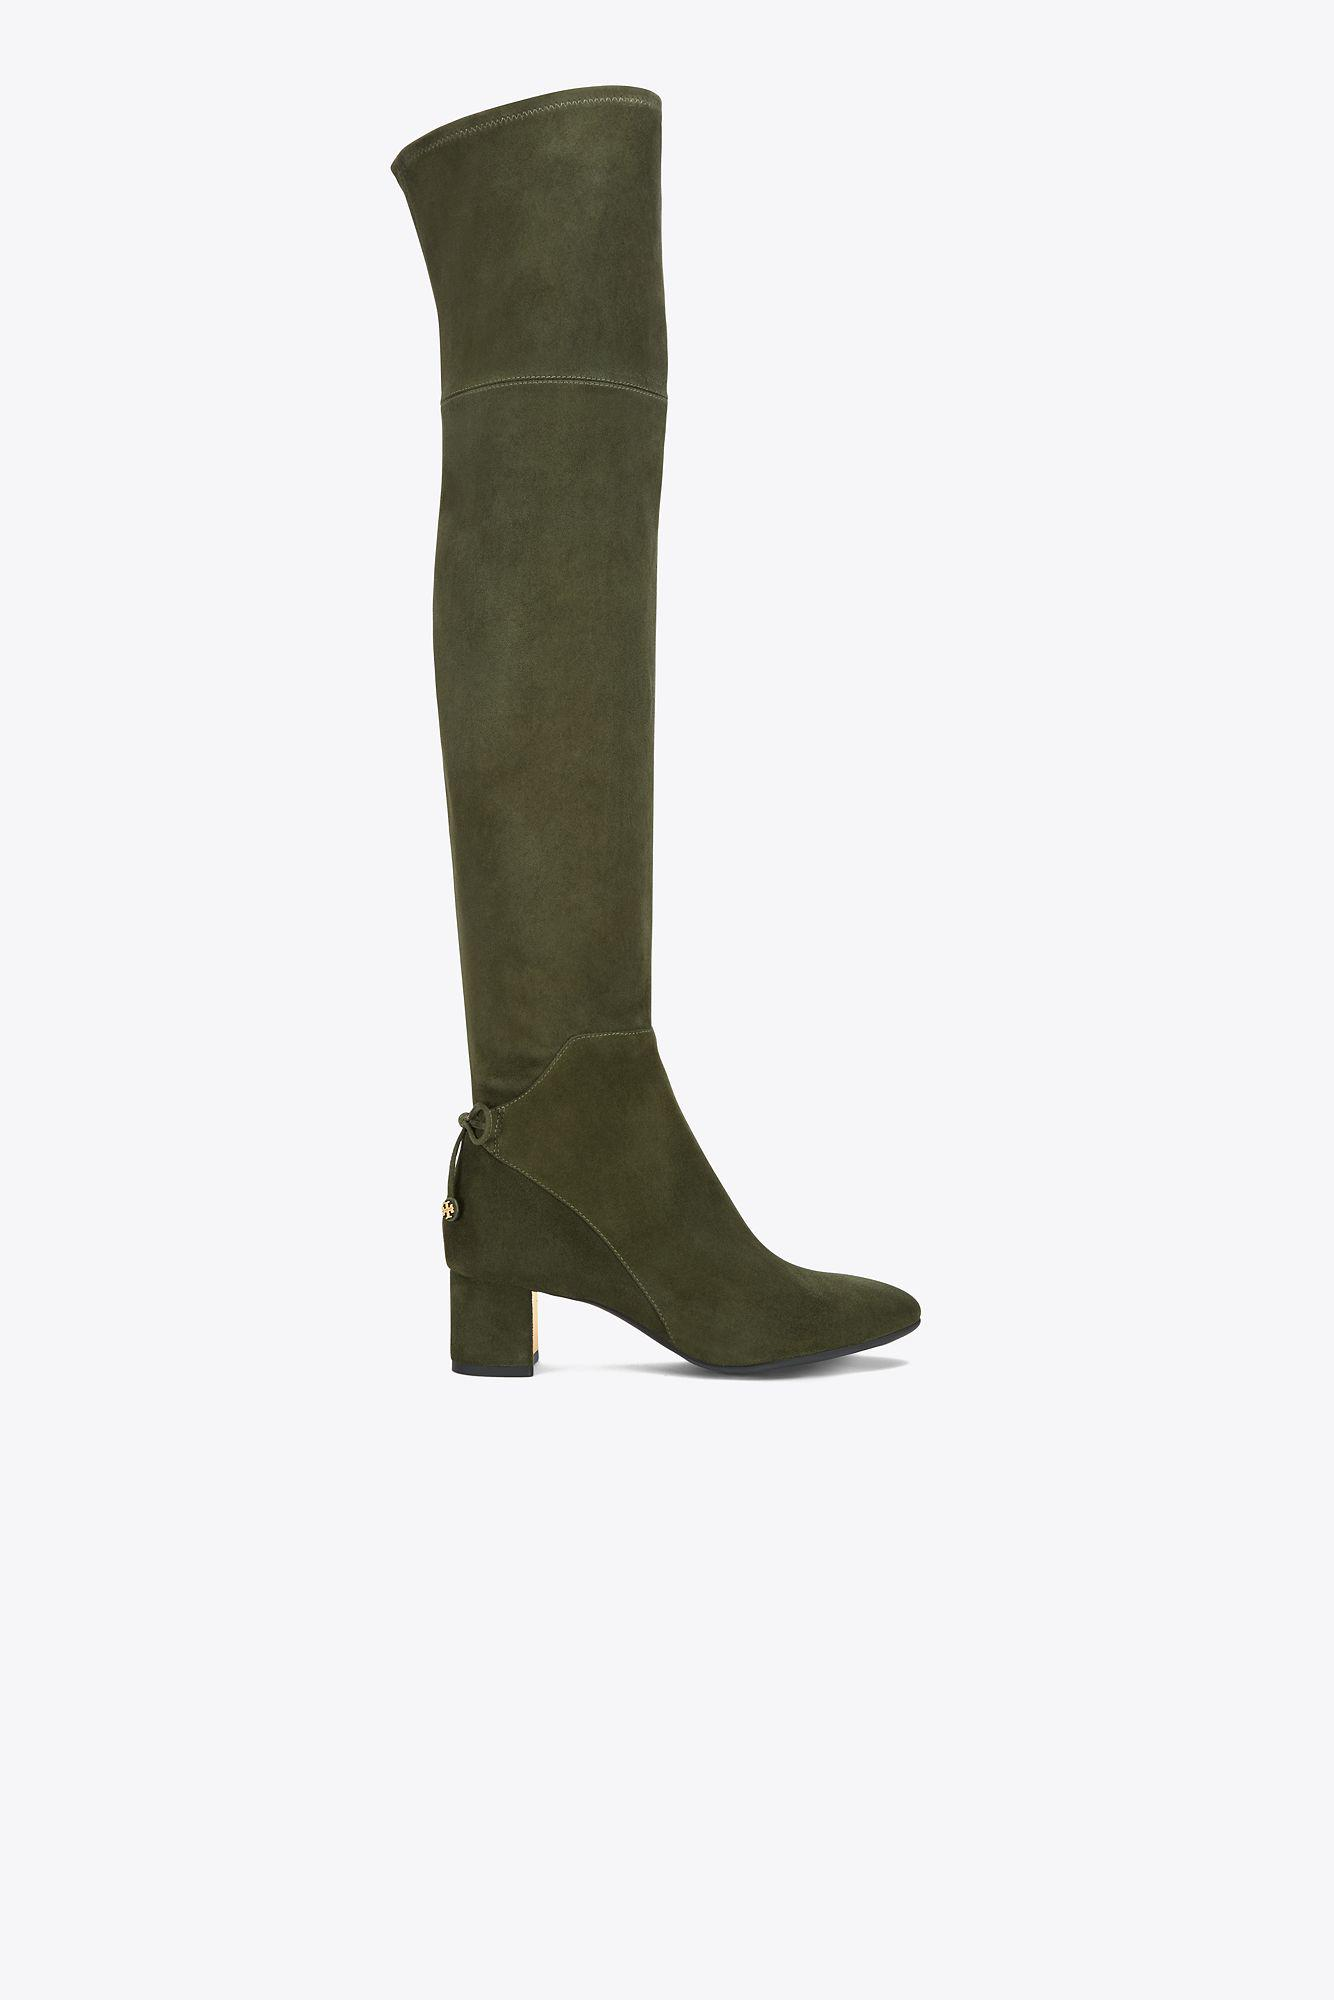 bbf5b76dfcb9ca Tory Burch Laila Suede Over-the-knee Boot in Green - Lyst